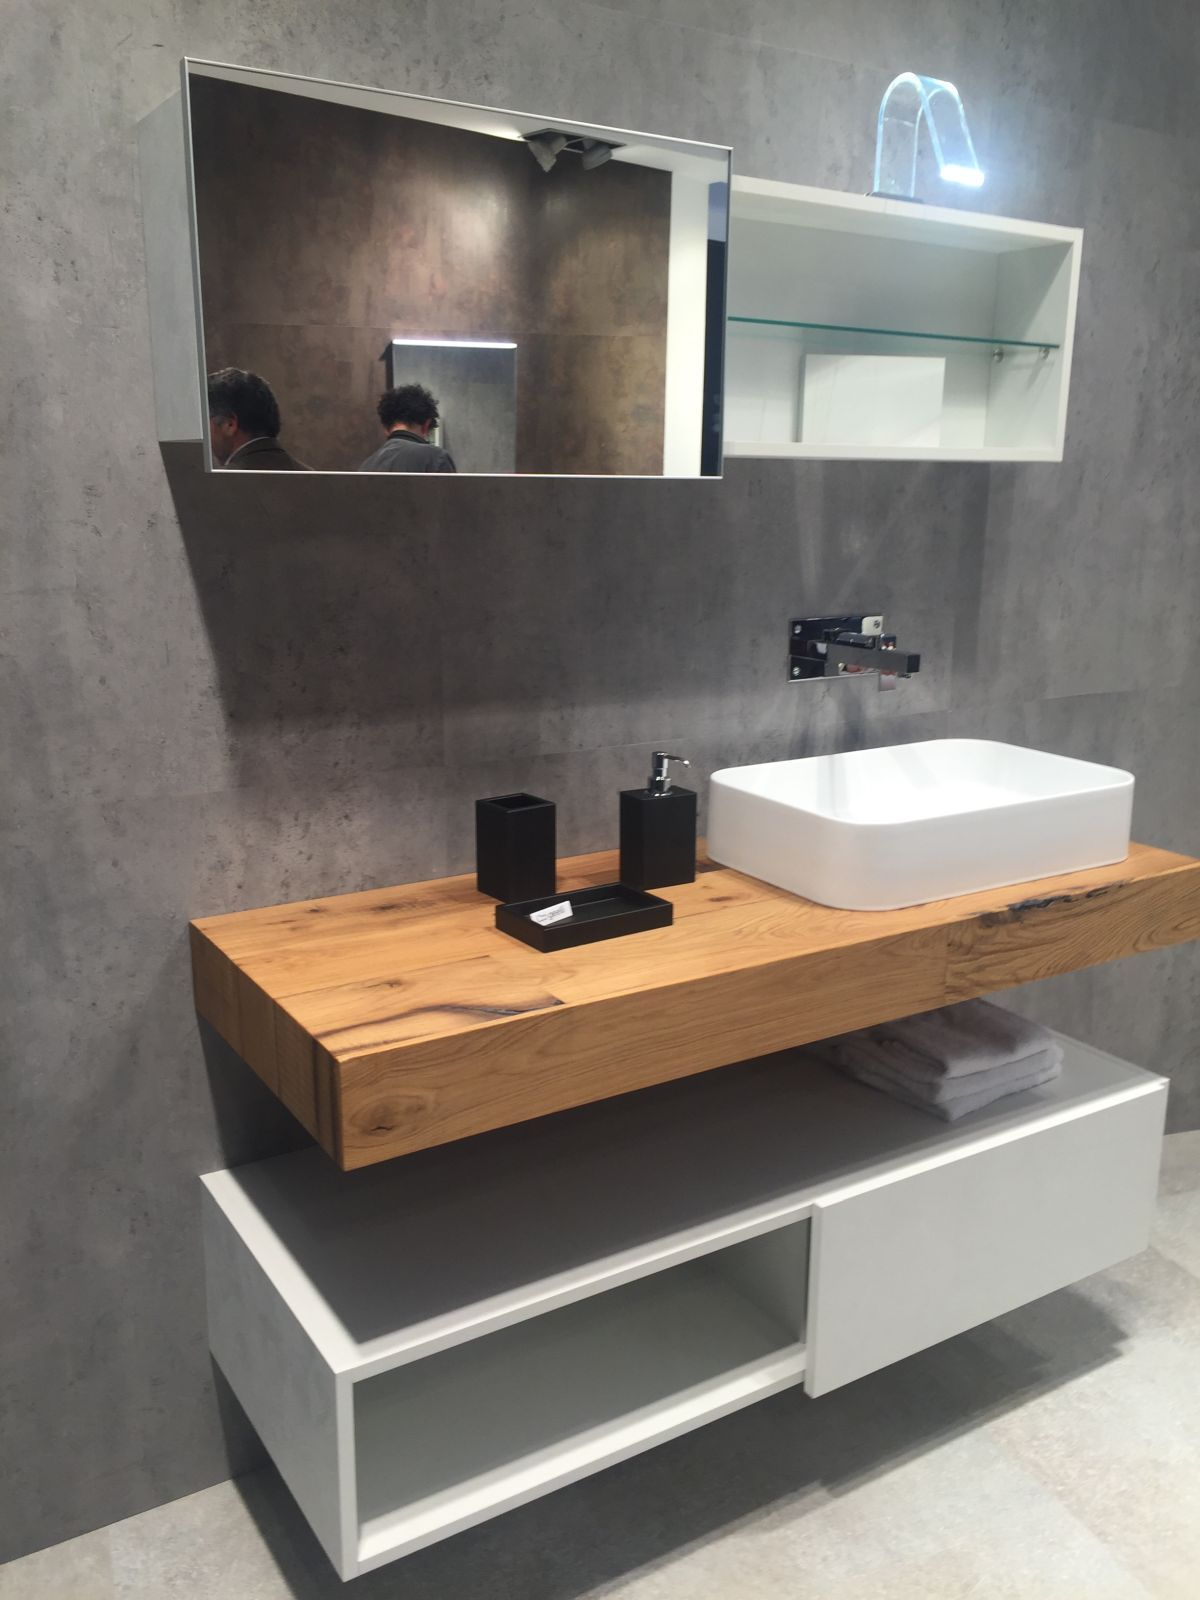 Stylish Ways To Decorate With Modern Bathroom Vanities Floating Bathroom Vanities Modern Bathroom Vanity Wood Bathroom Vanity